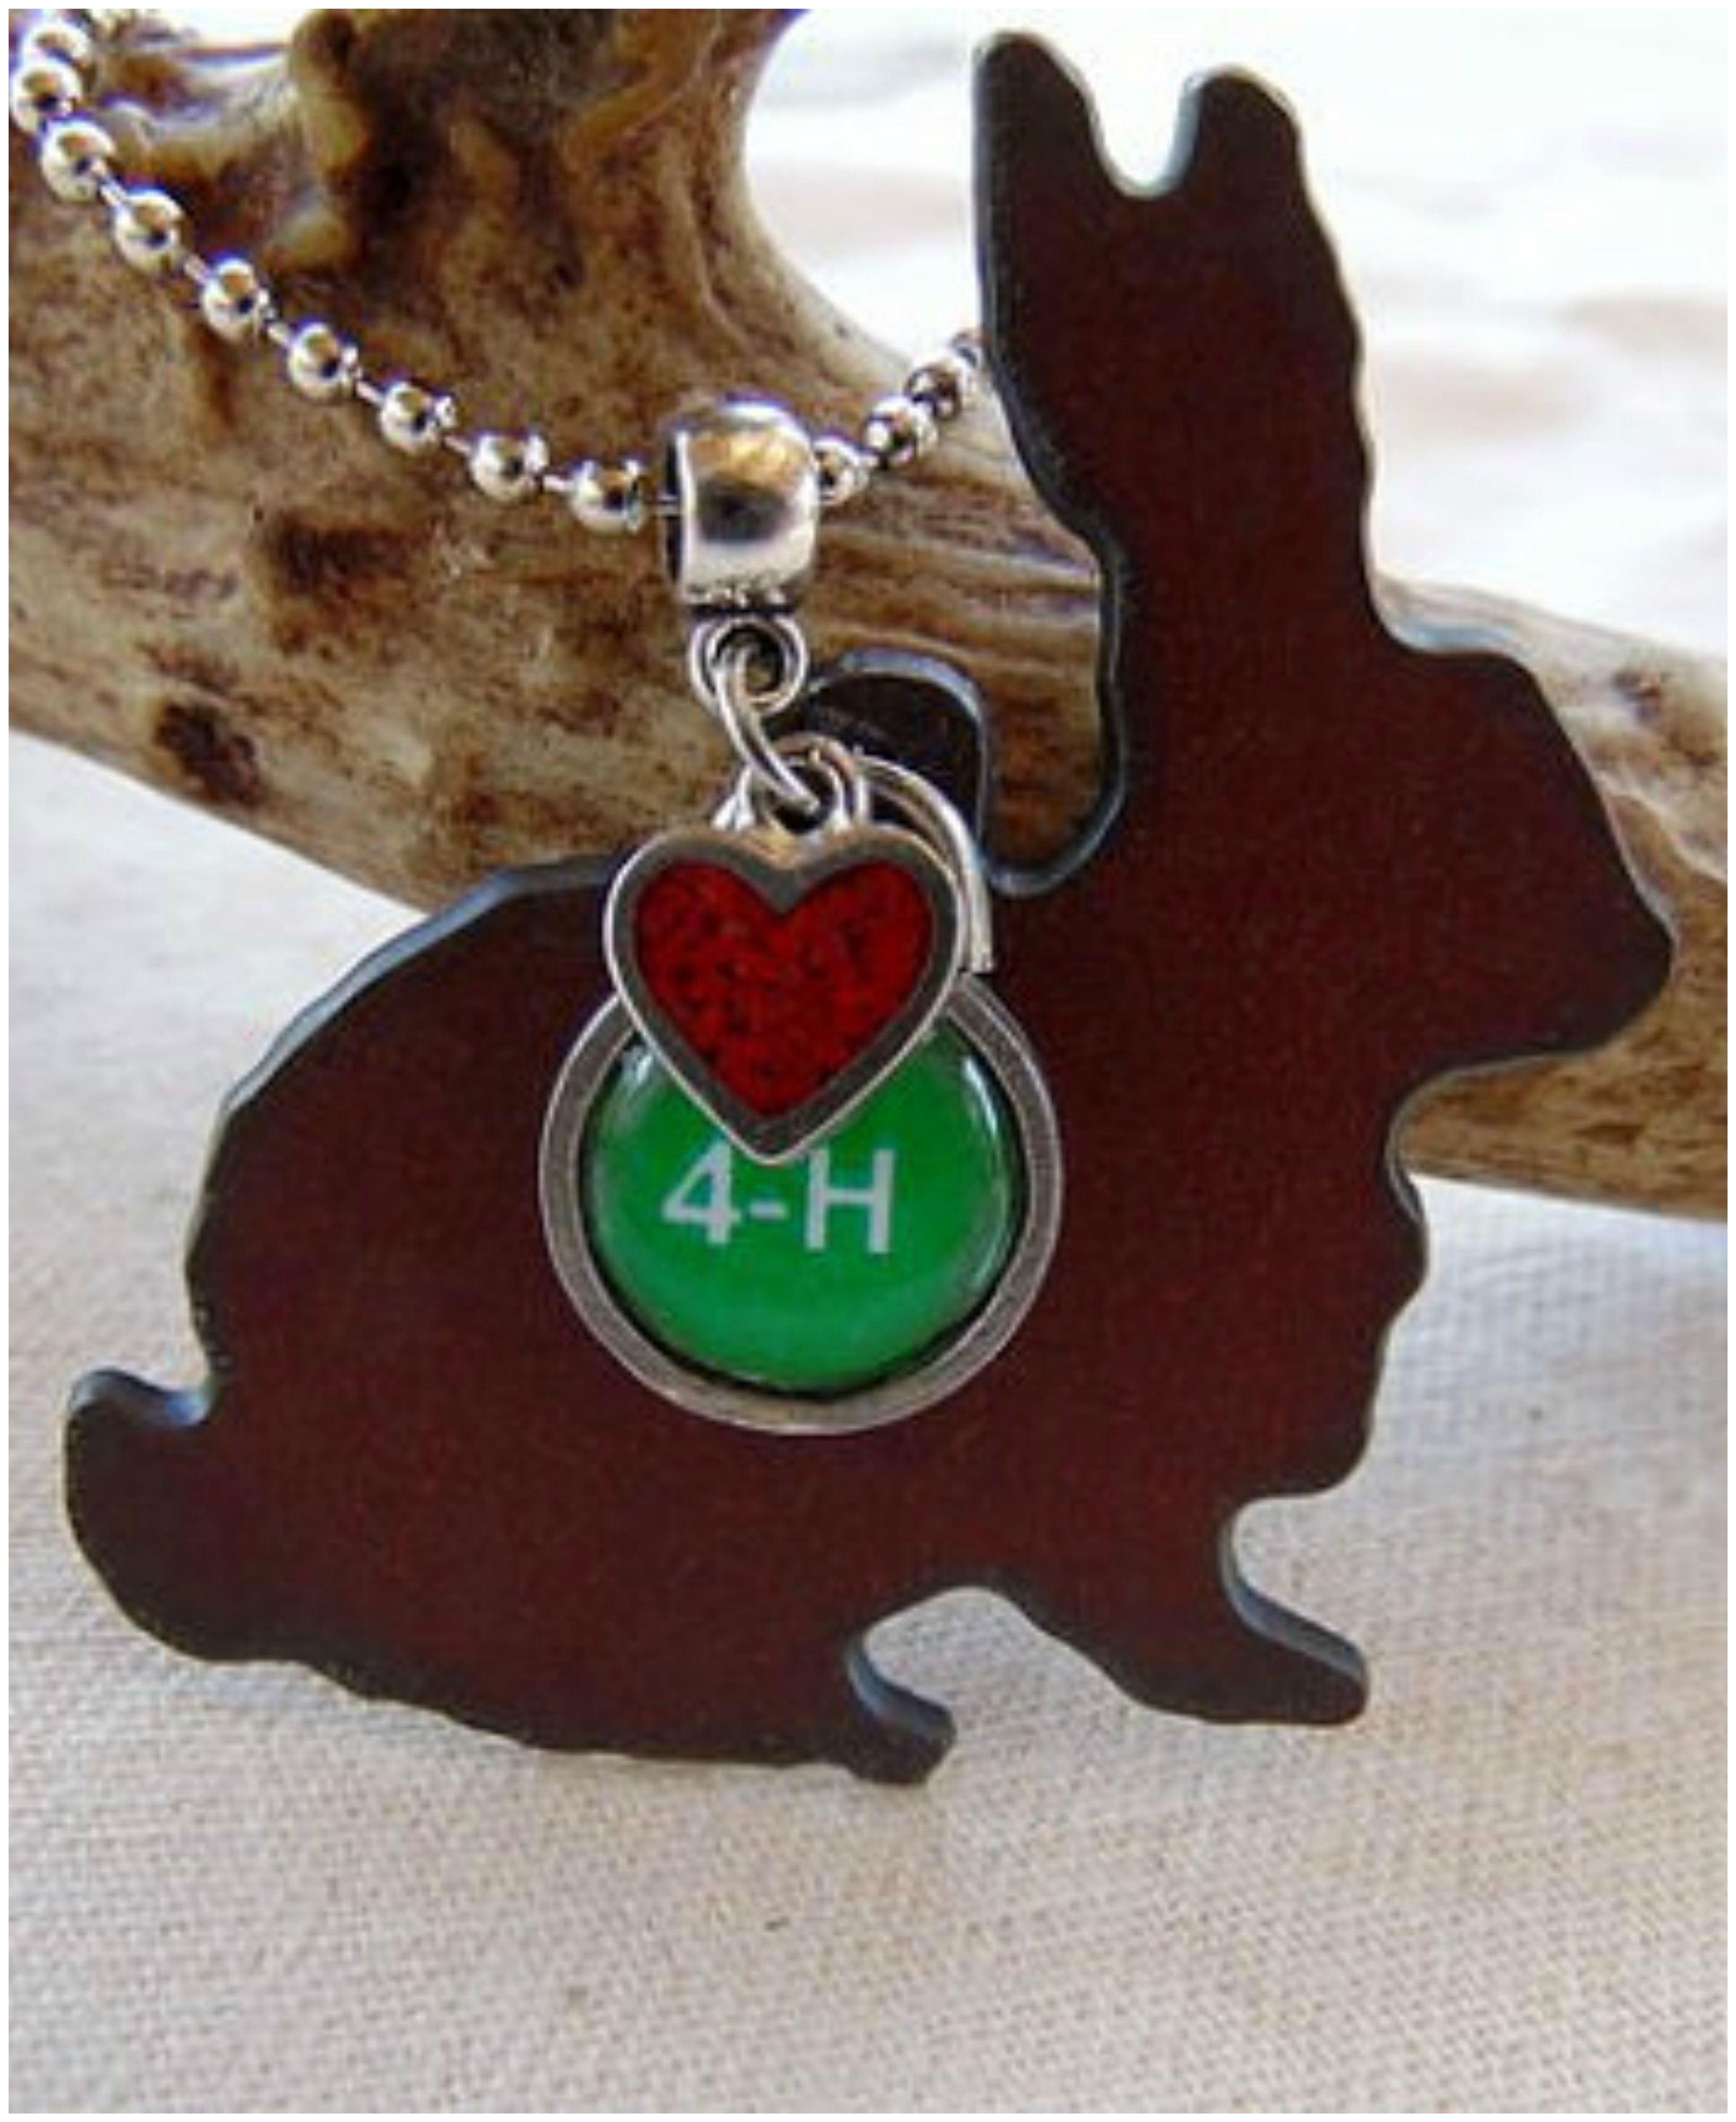 4 H Rabbit Necklace By Whippoorwill Valley With Images